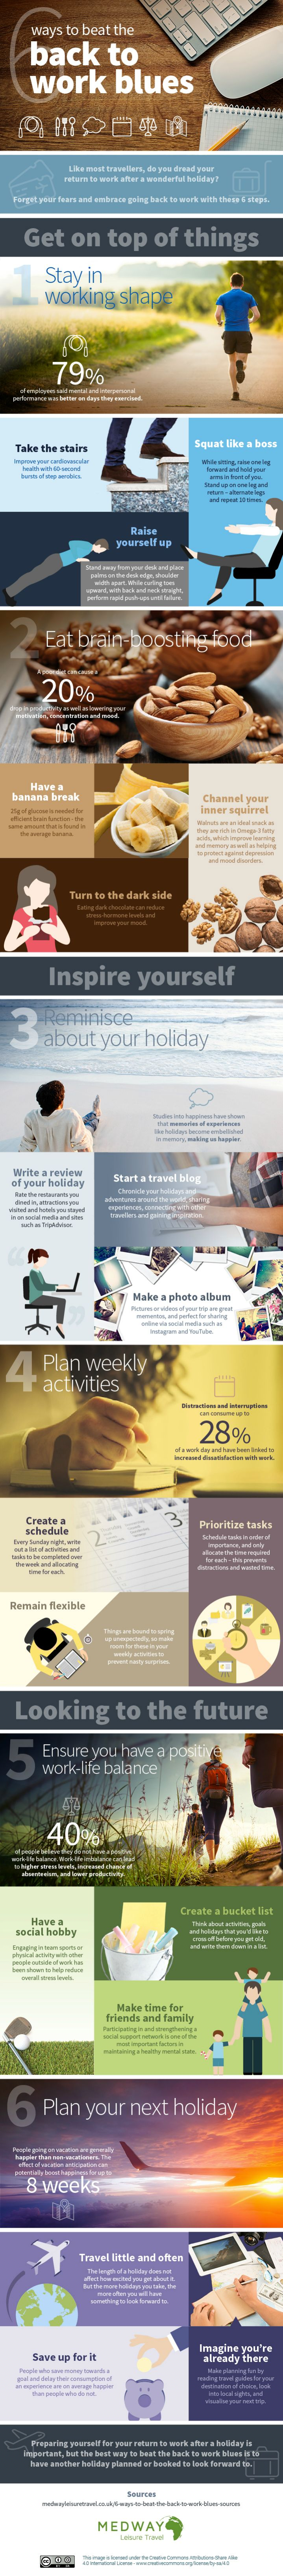 6 Ways to Beat the Back to Work Blues #infographic